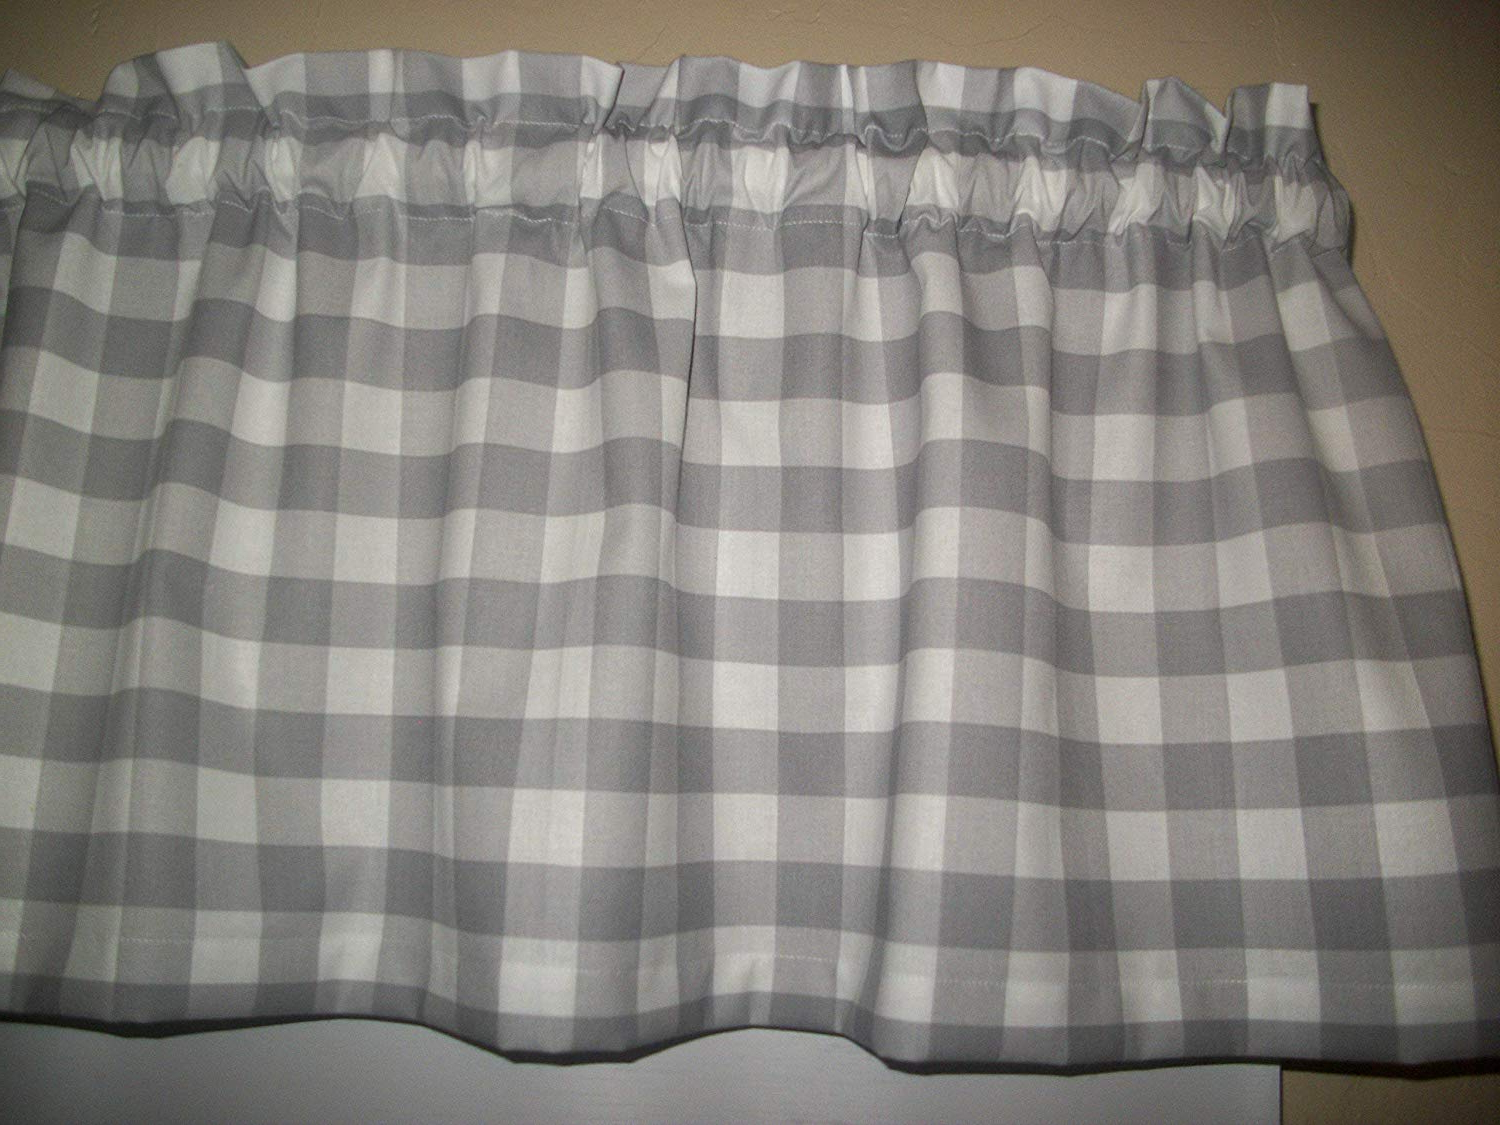 Gray Grey White Buffalo Plaid Checked Checks Farmhouse Country Farm Kitchen Fabric Decor Window Treatment Curtain Topper Valance With Well Known Barnyard Buffalo Check Rooster Window Valances (View 14 of 20)